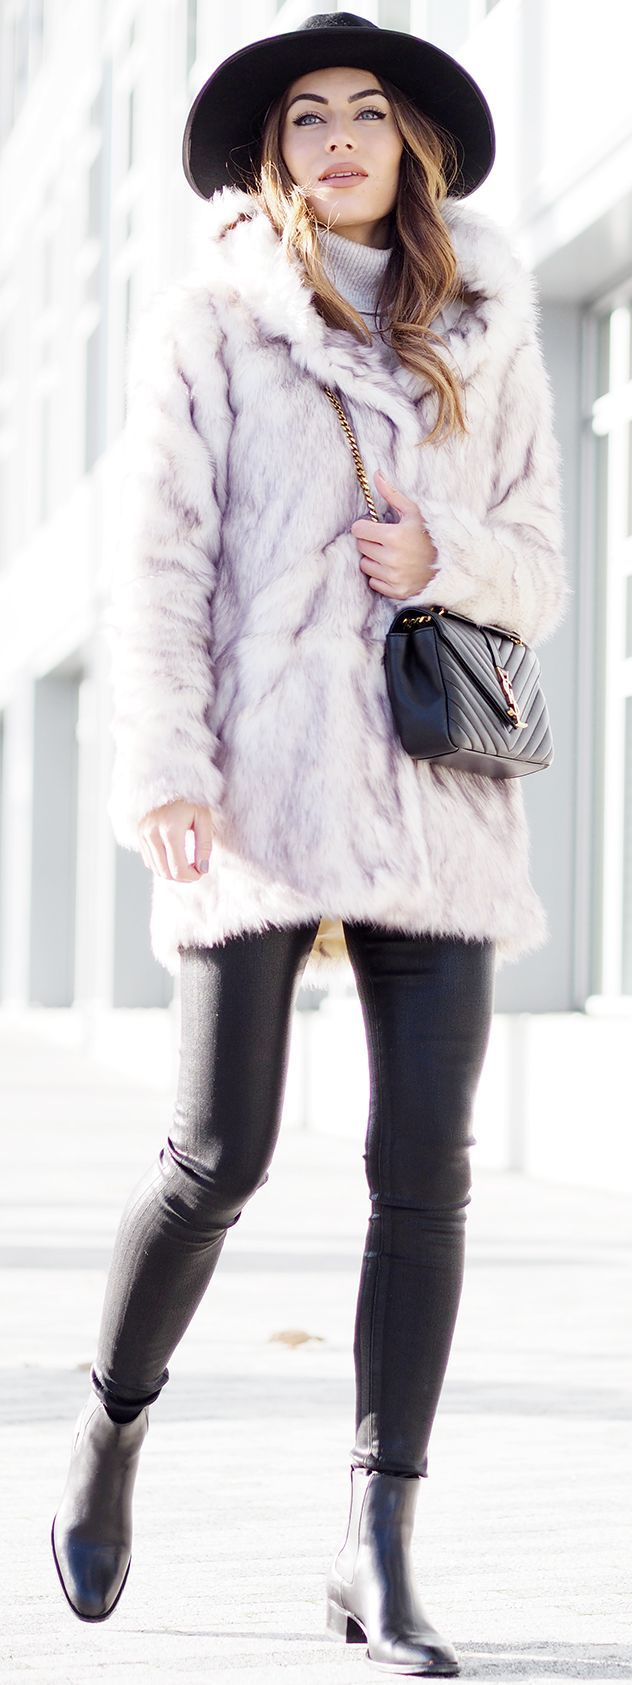 Winter Fashion Styles